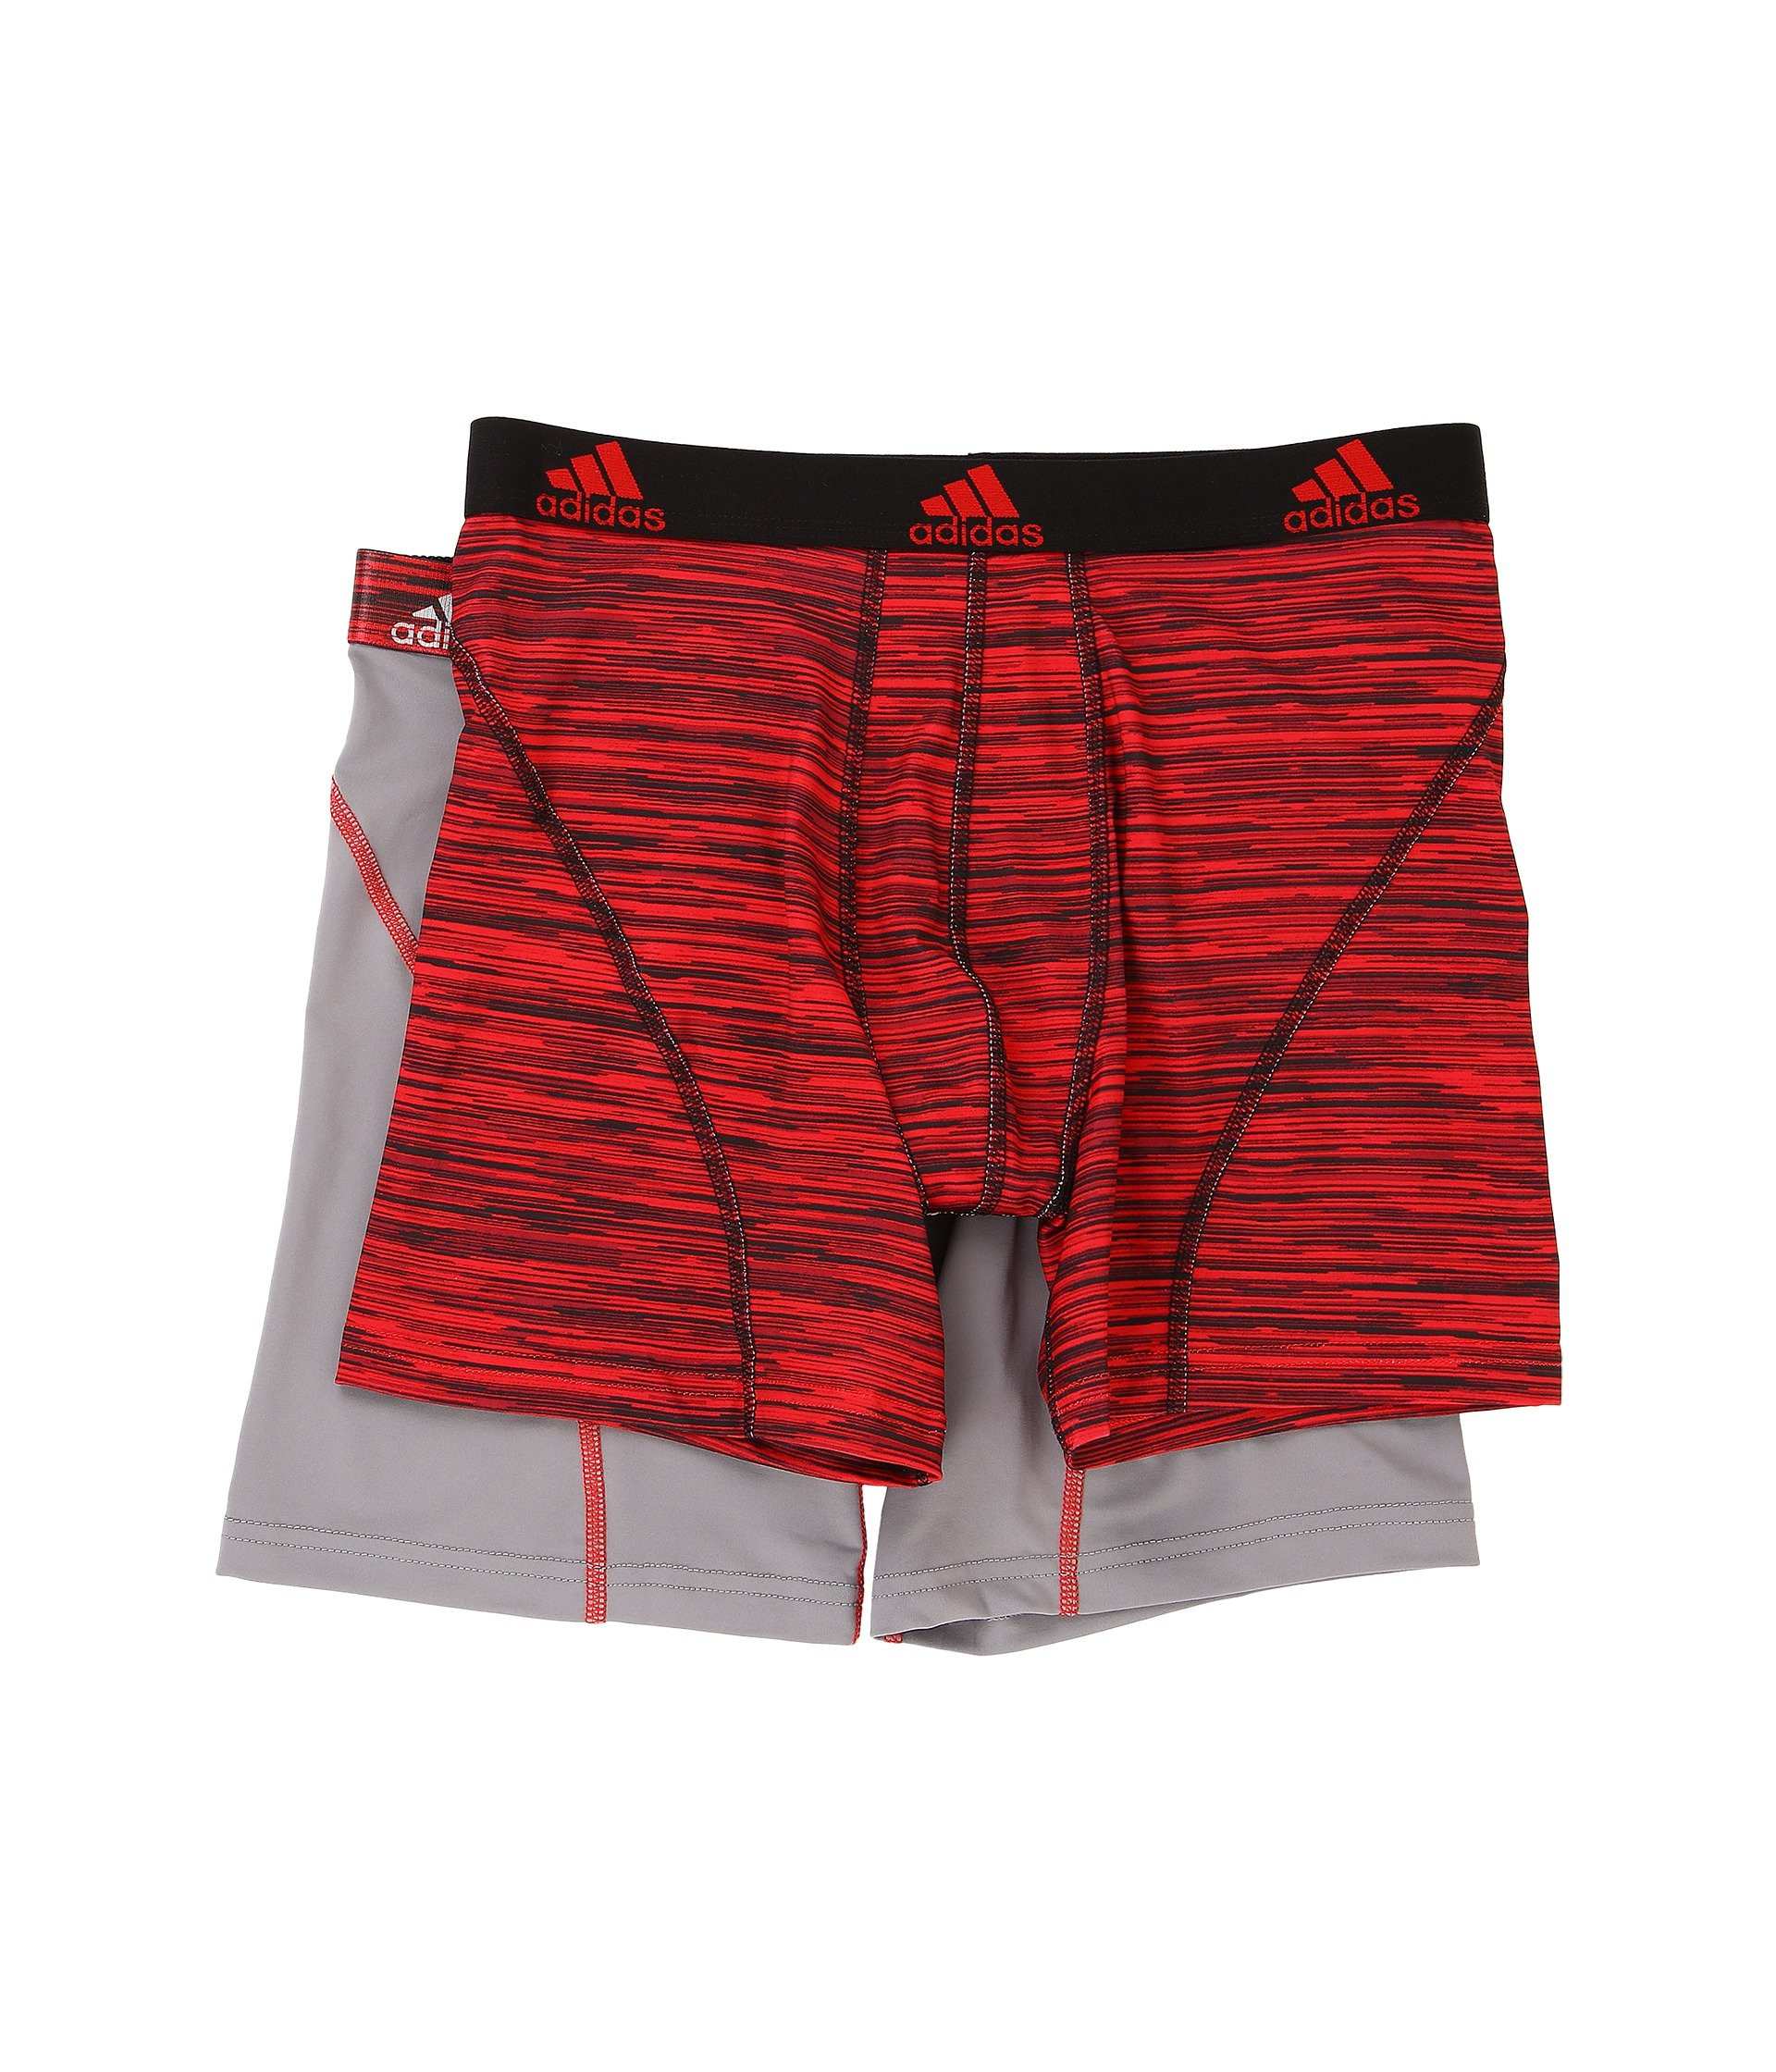 Adidas Originals Sport Performance Climalite Graphic 2 Pack Boxer